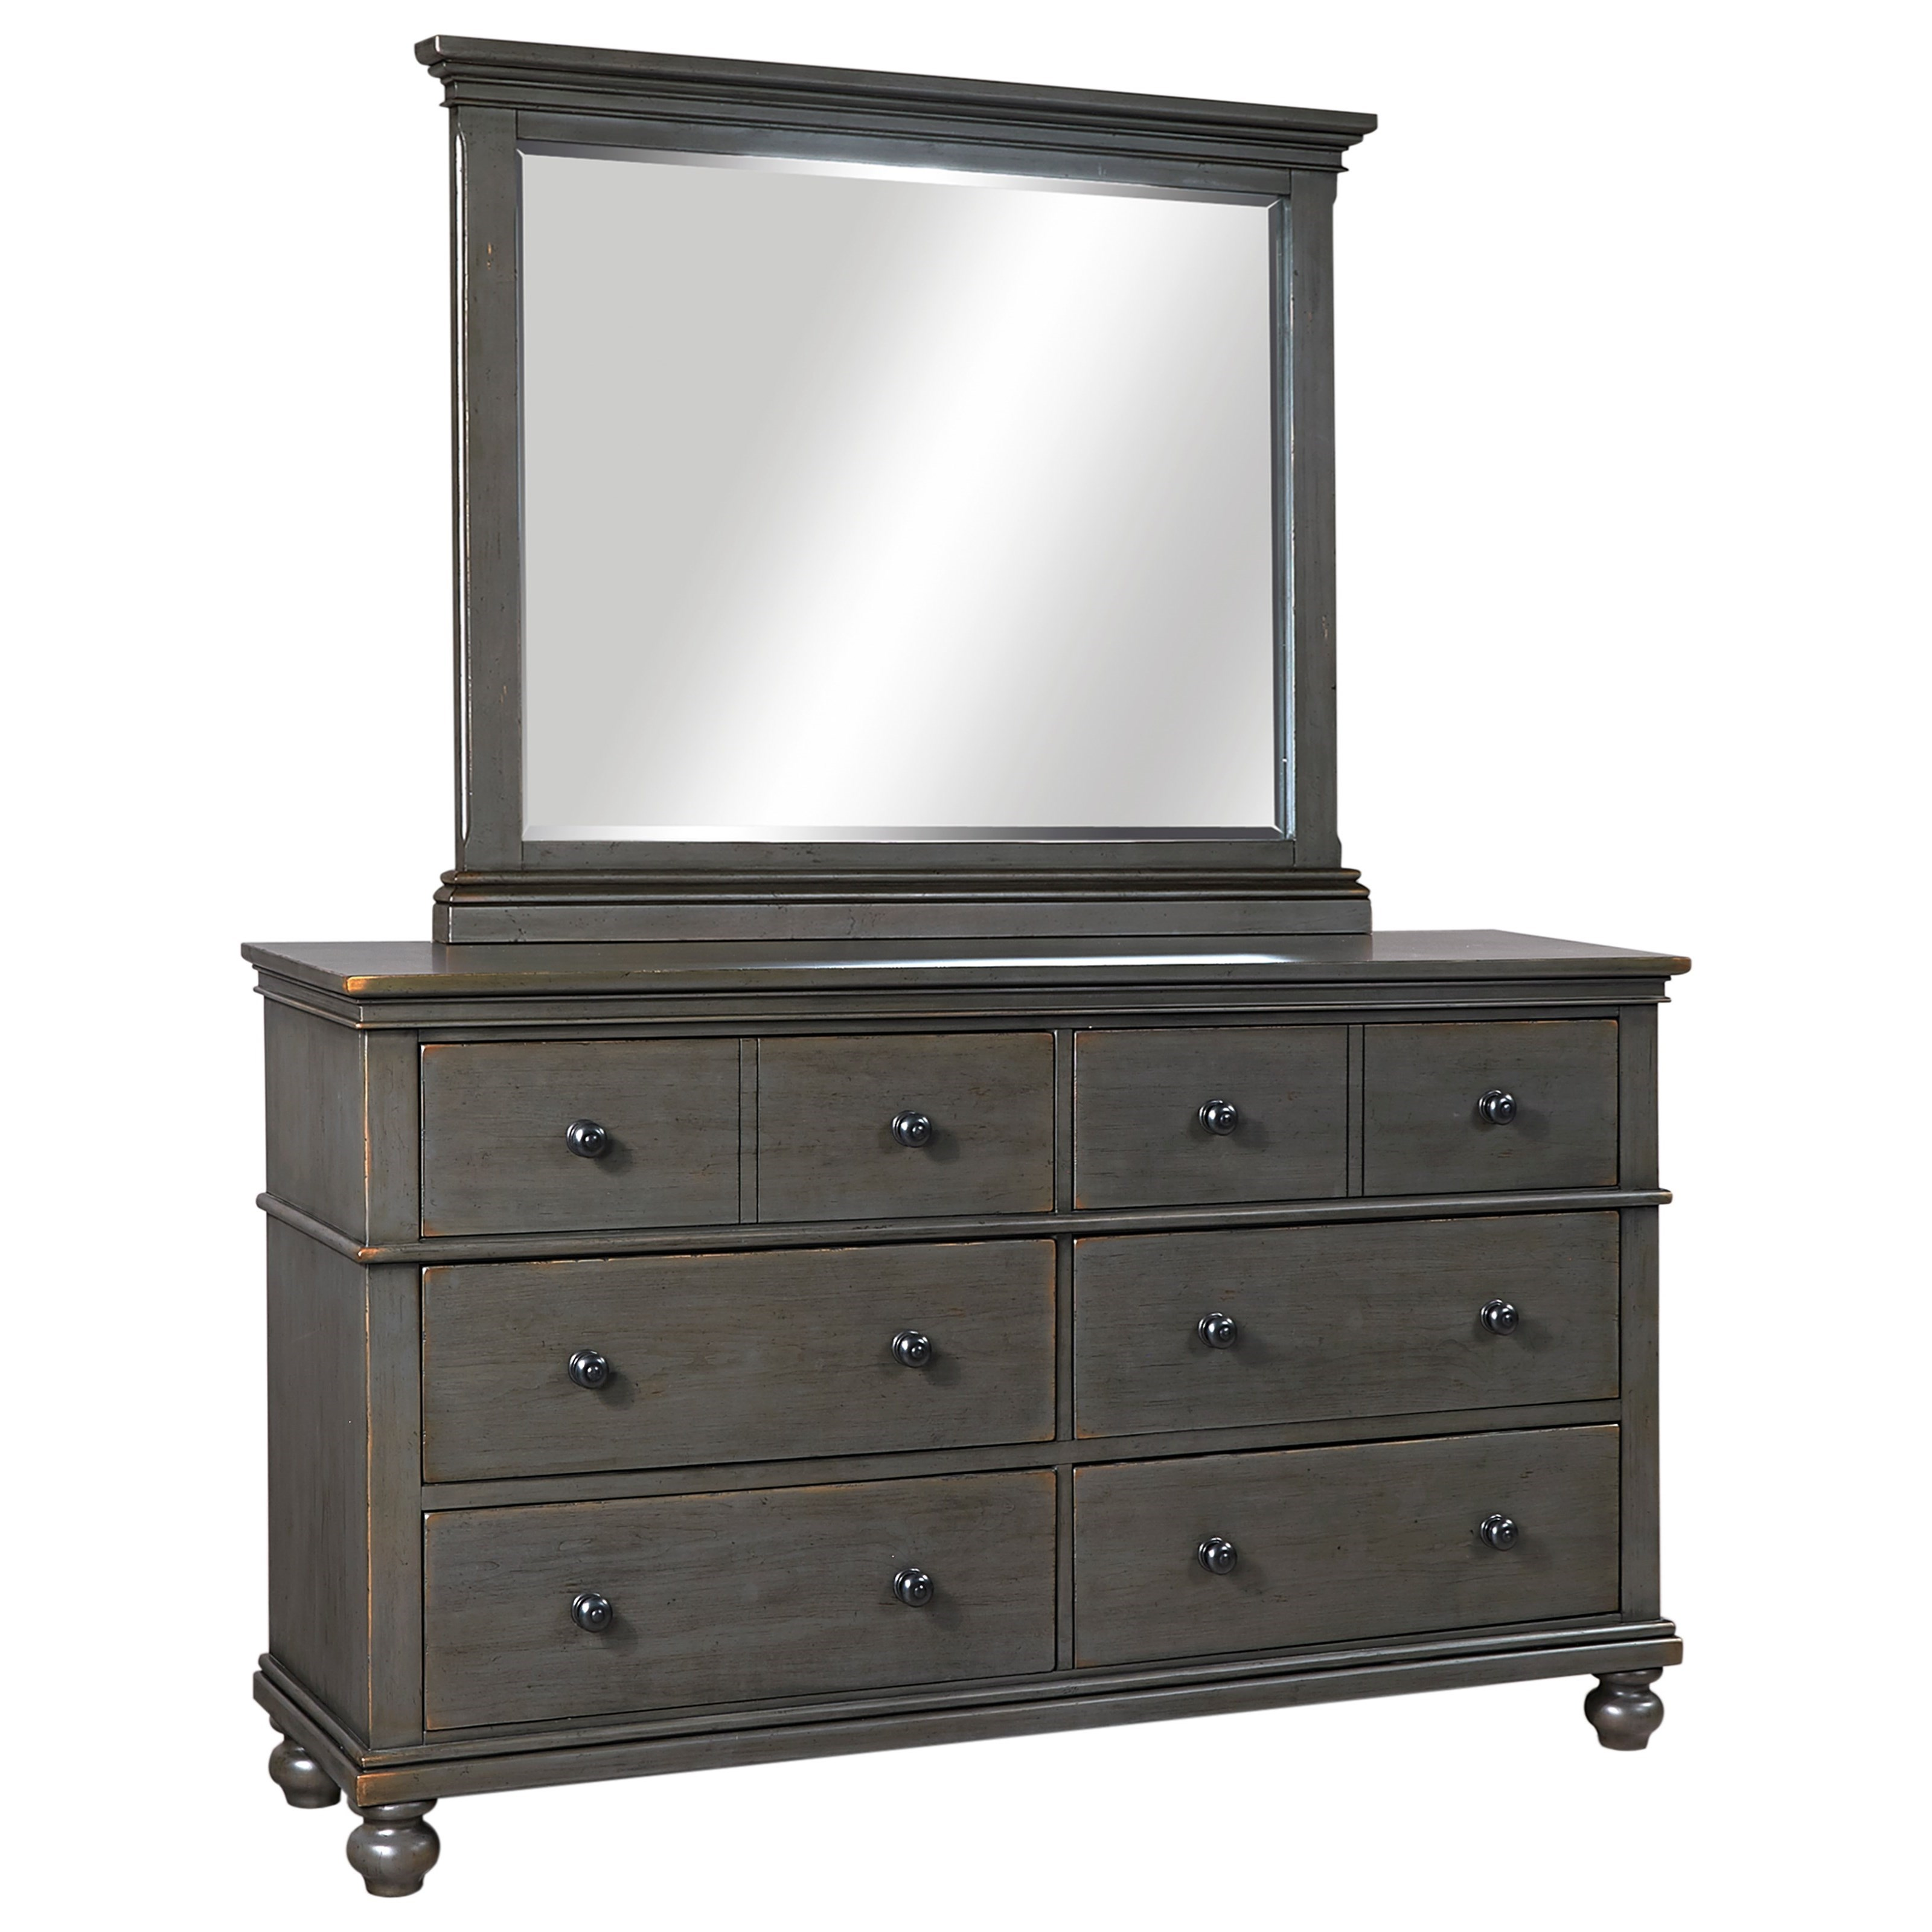 Aspenhome Oxford Transitional 6 Drawer Dresser And Mirror Set With Cedar And Felt Lining